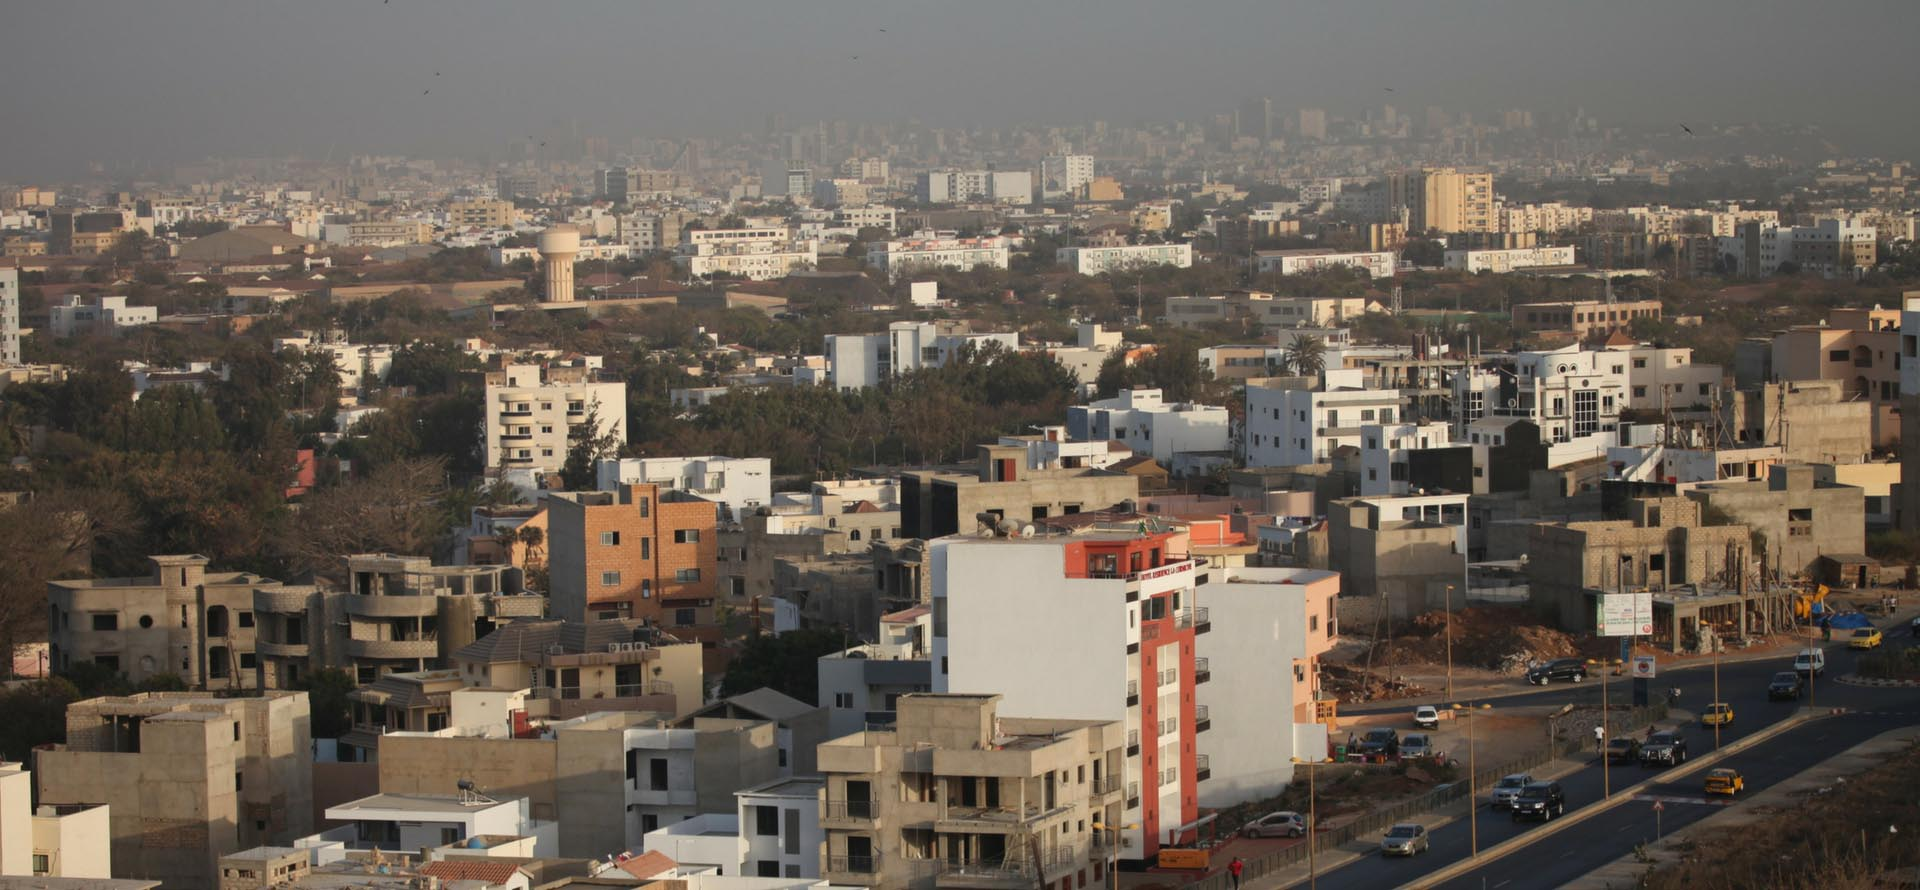 Buildings in Senegal with smog overhead